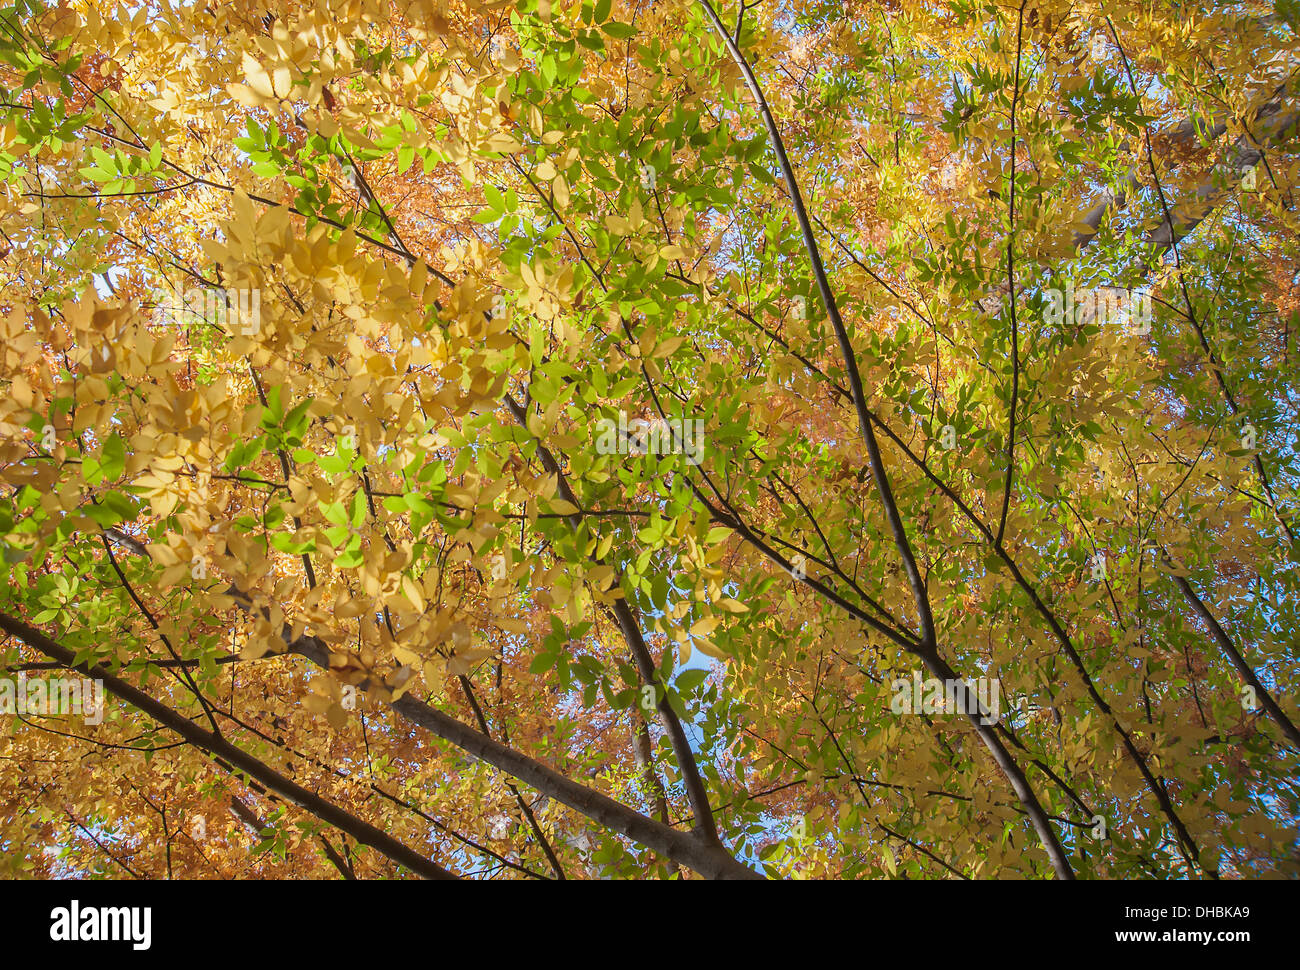 Japanese Lilac tree, Zelkova serrrata, viewed from underneath looking up at the canopy of backlit leaves turning orange. - Stock Image